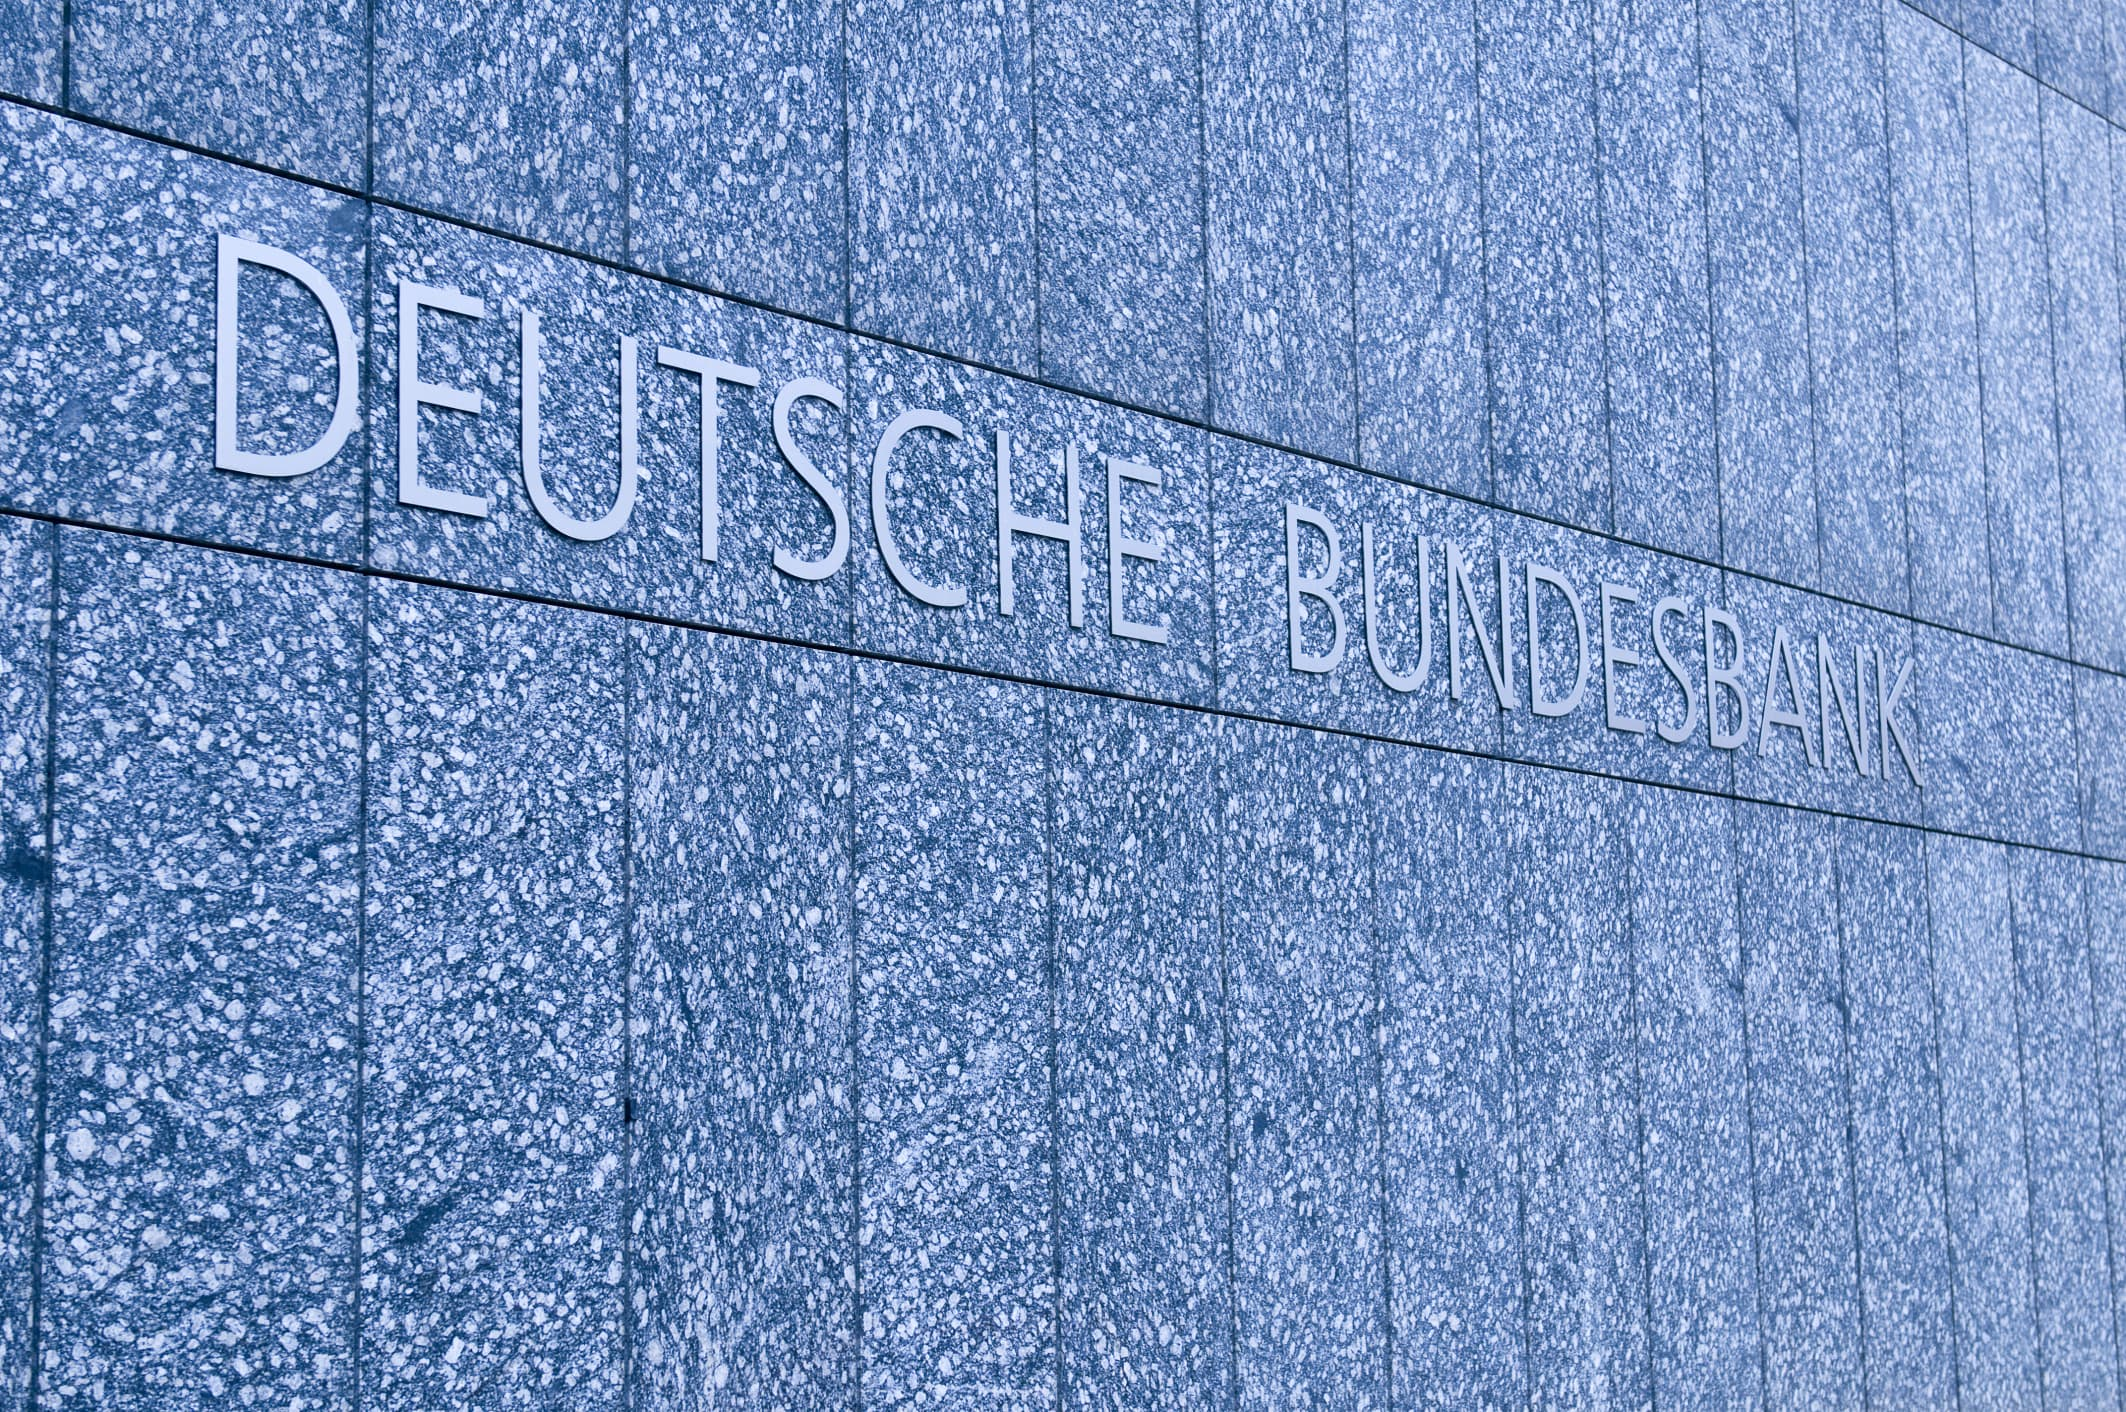 Germany to auction a zero-percent 30-year bond for the first time